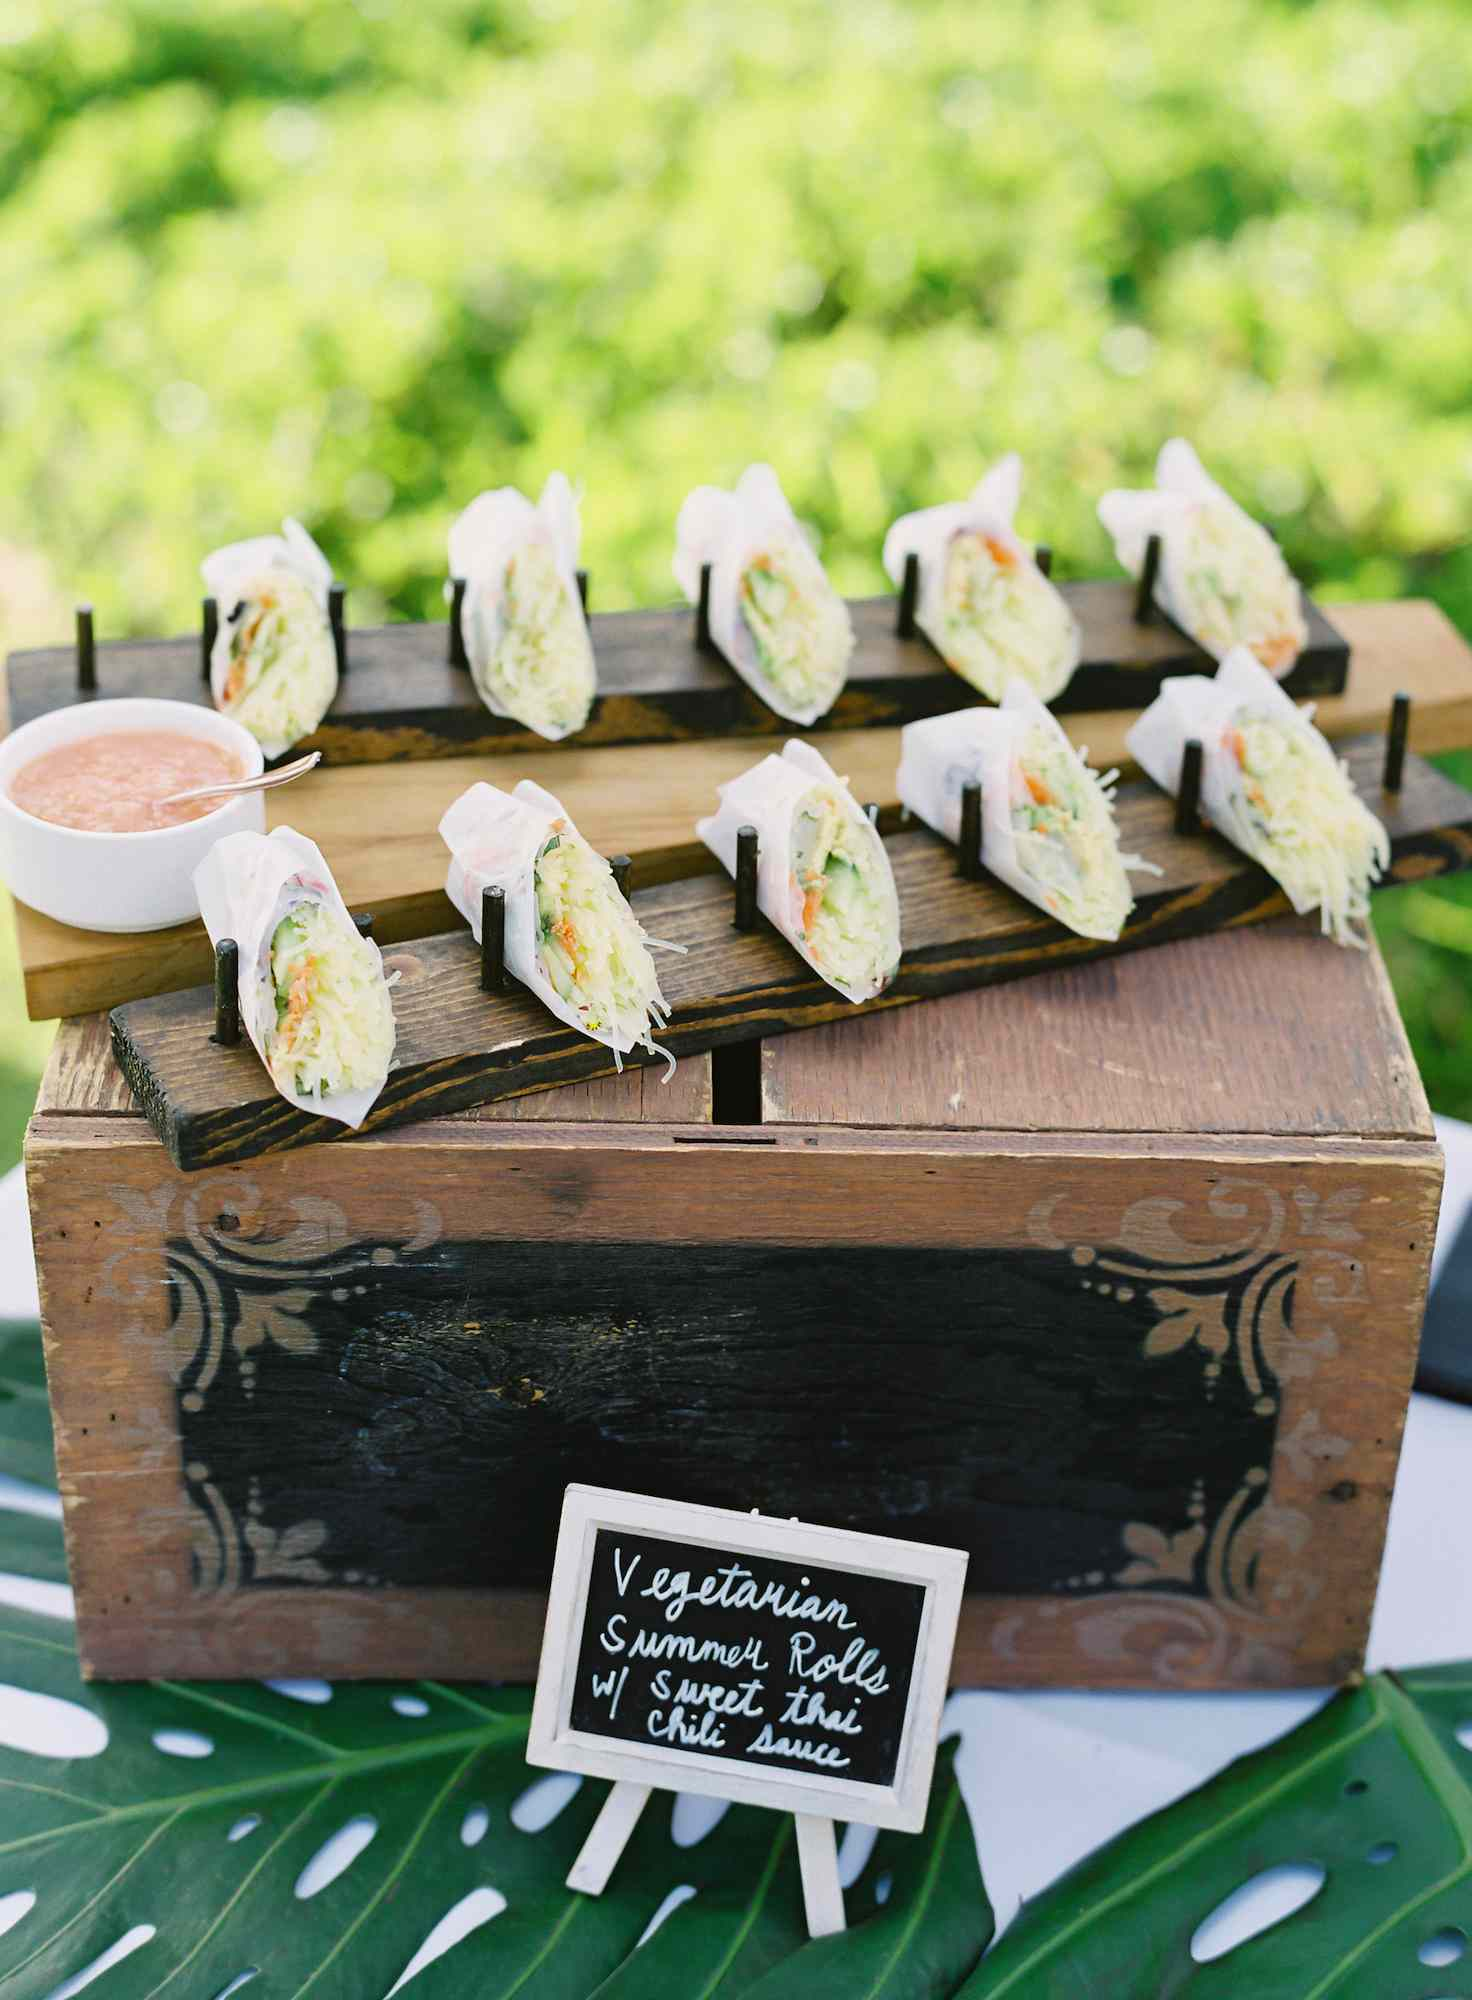 Wood box with vegetarian summer rolls and a sauce